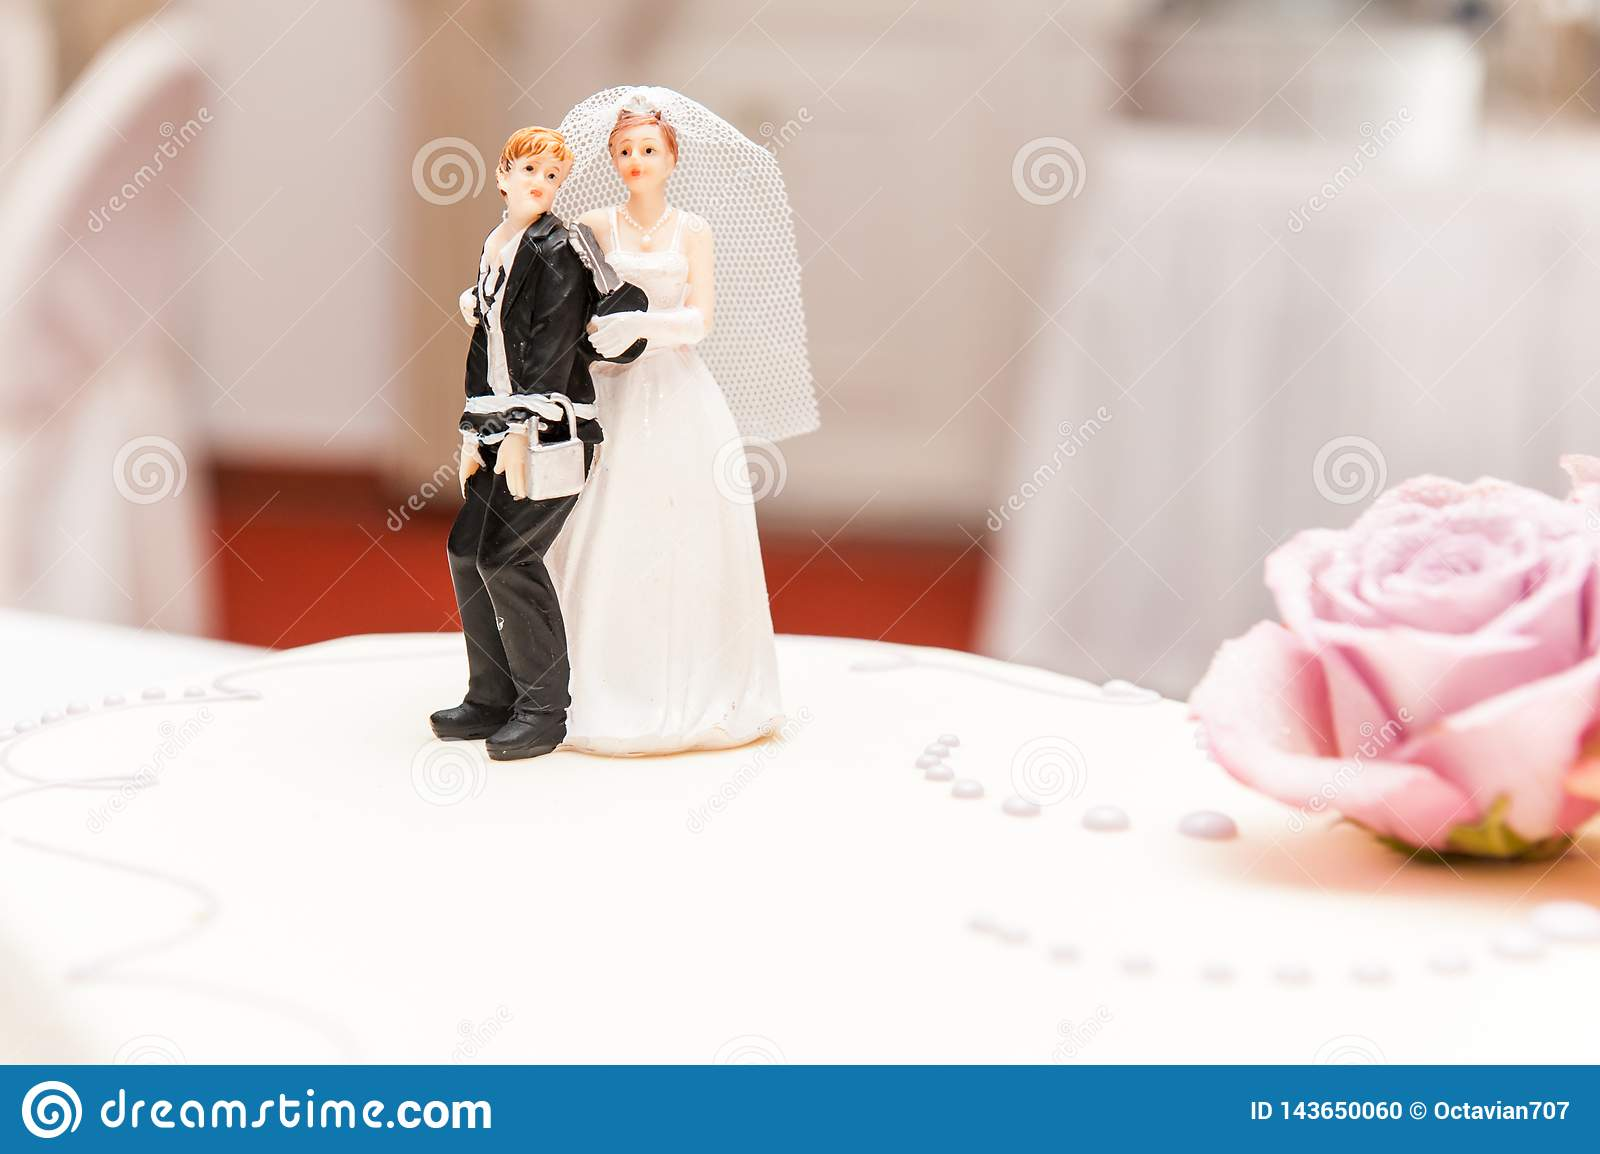 Funny bride and groom made of sugar on top of wedding cake